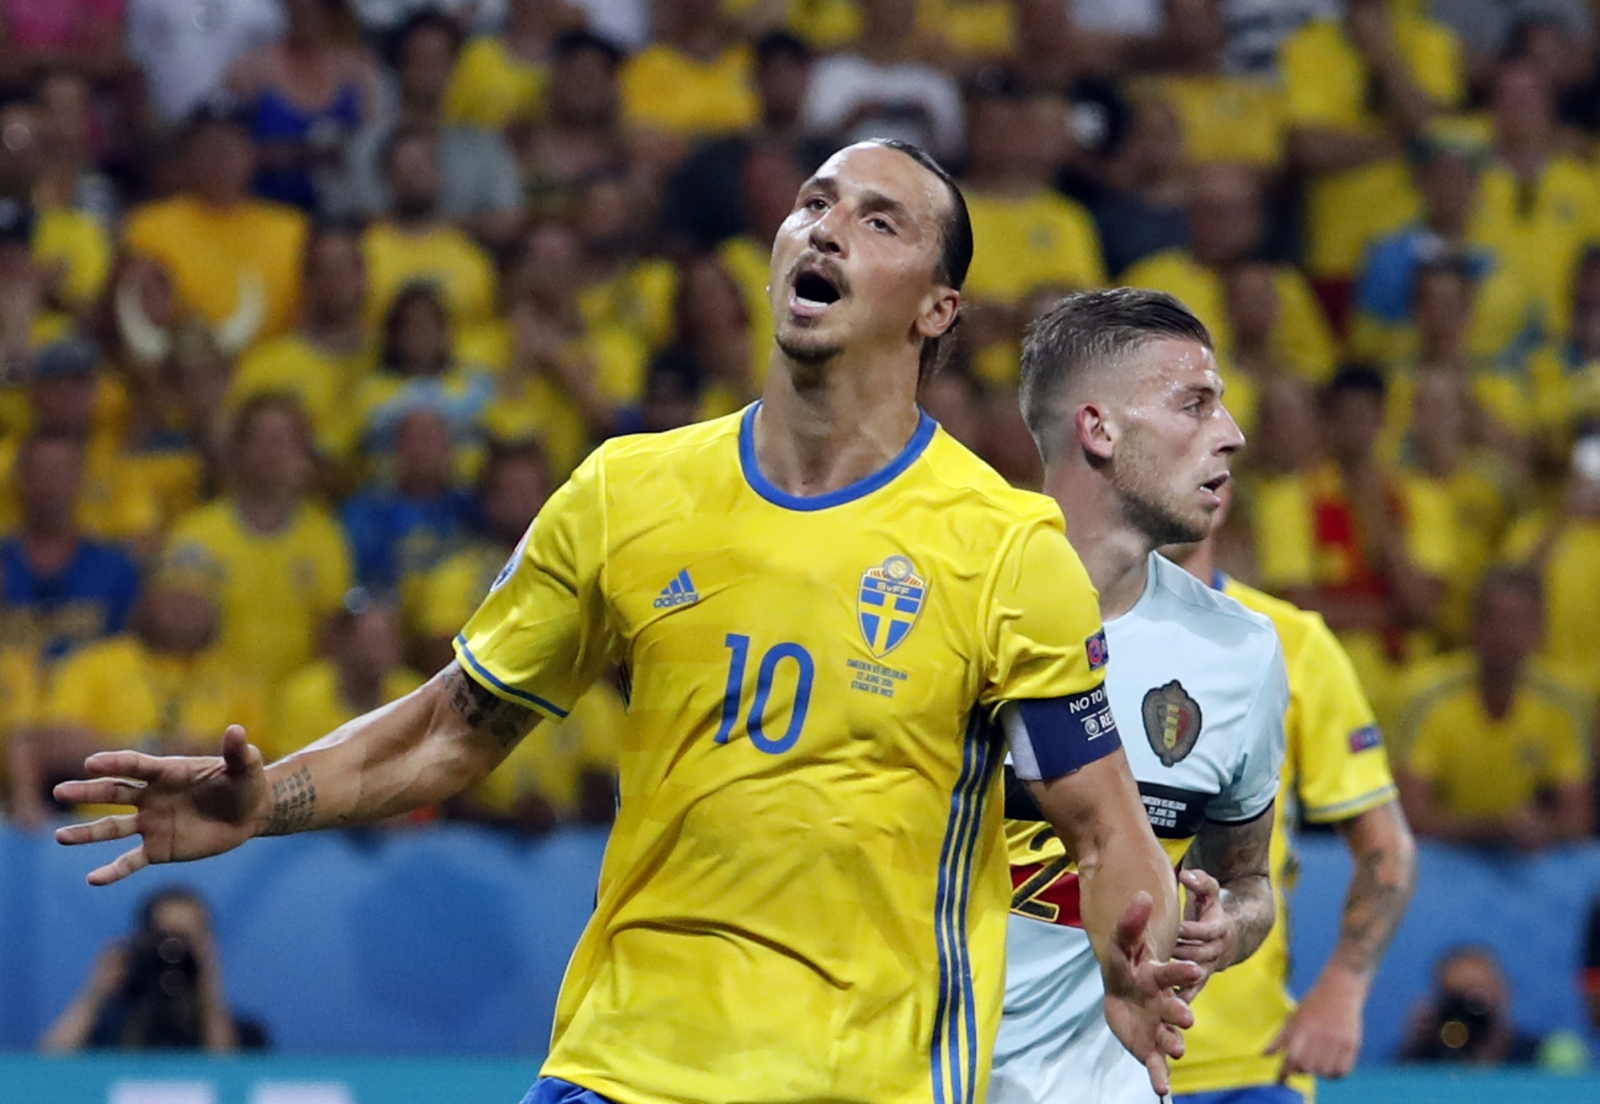 Zlatan Ibrahimovic 39;given extended break by Jose Mourinho39; after Euro